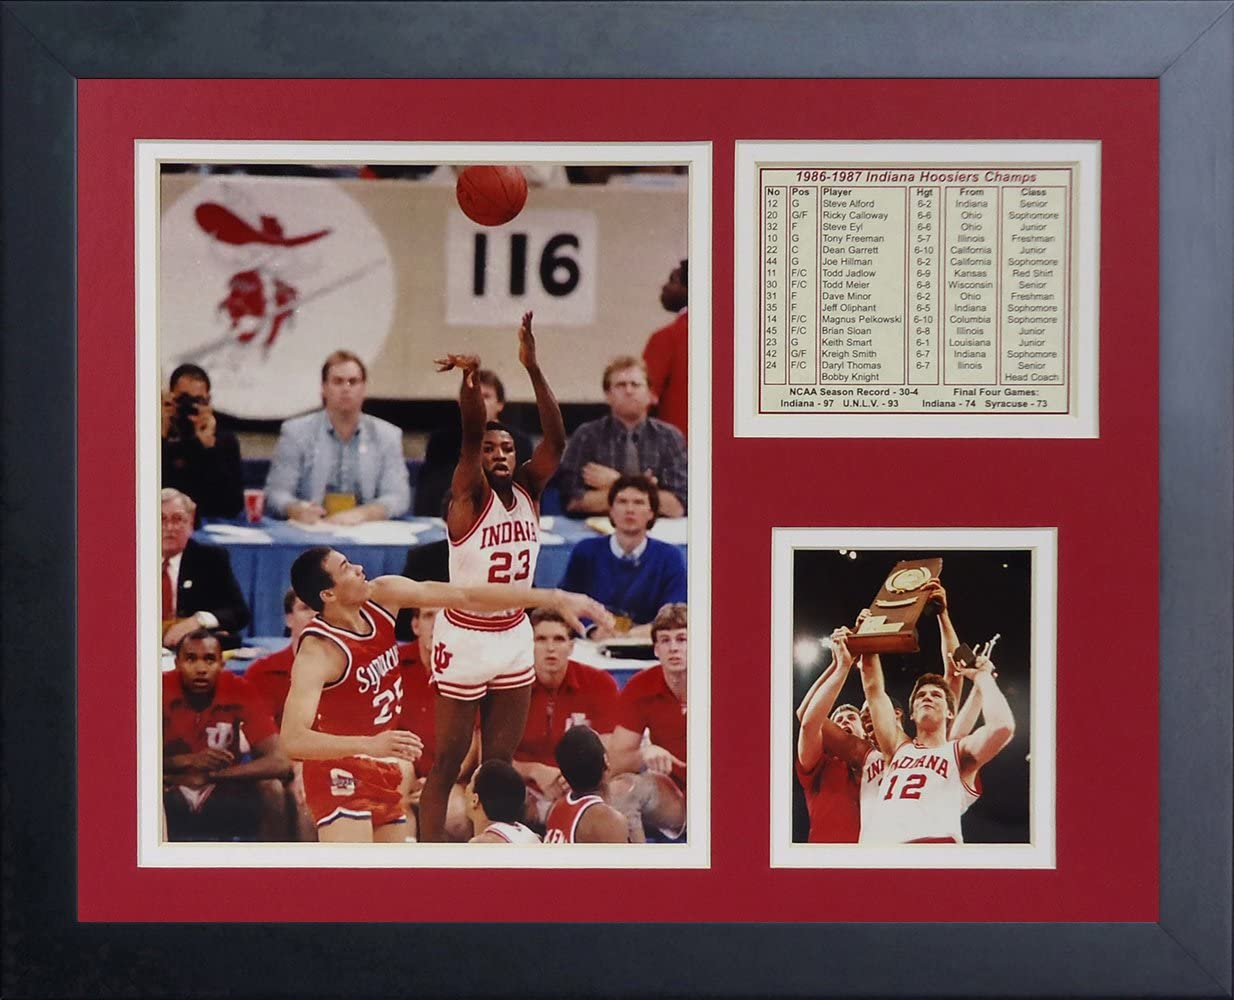 Legends NEW Never 5 ☆ very popular Die 1987 Indiana Hoosiers Collage Photo Champions